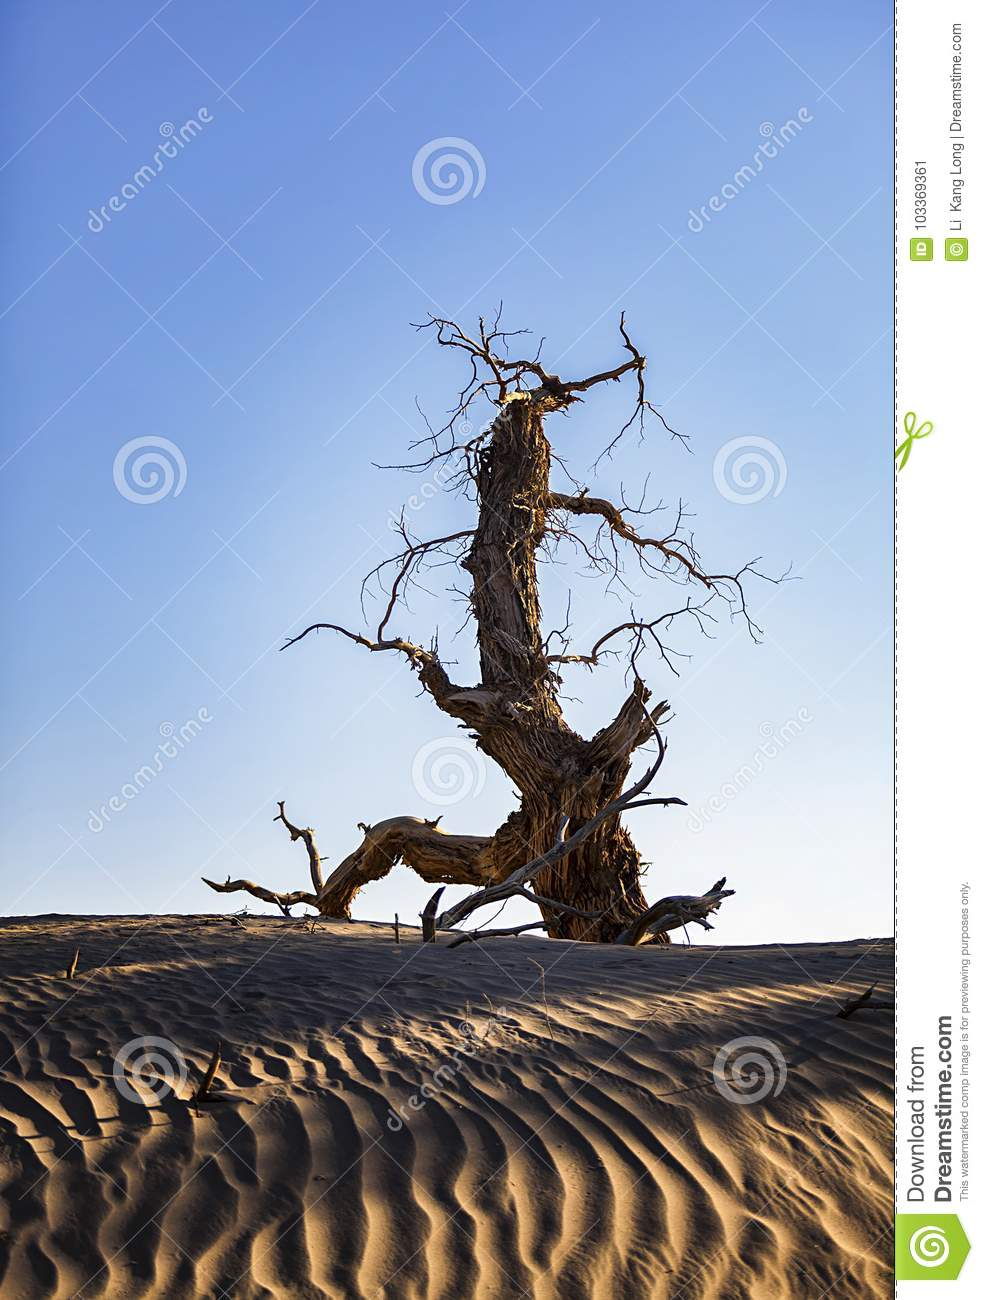 Populus euphratica died without fail